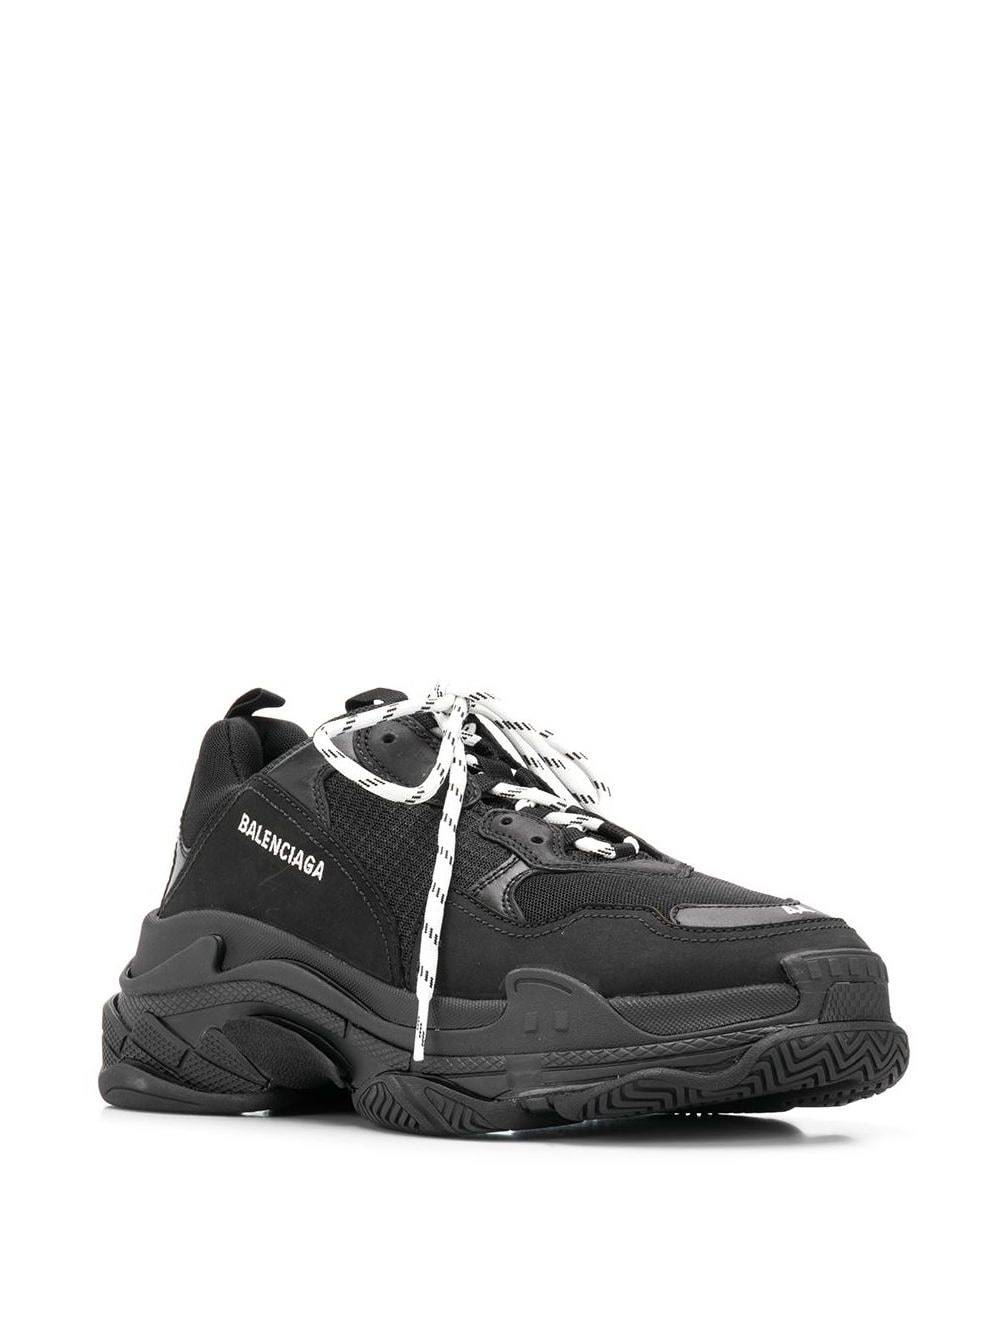 BALENCIAGA Triple S Sneakers Black